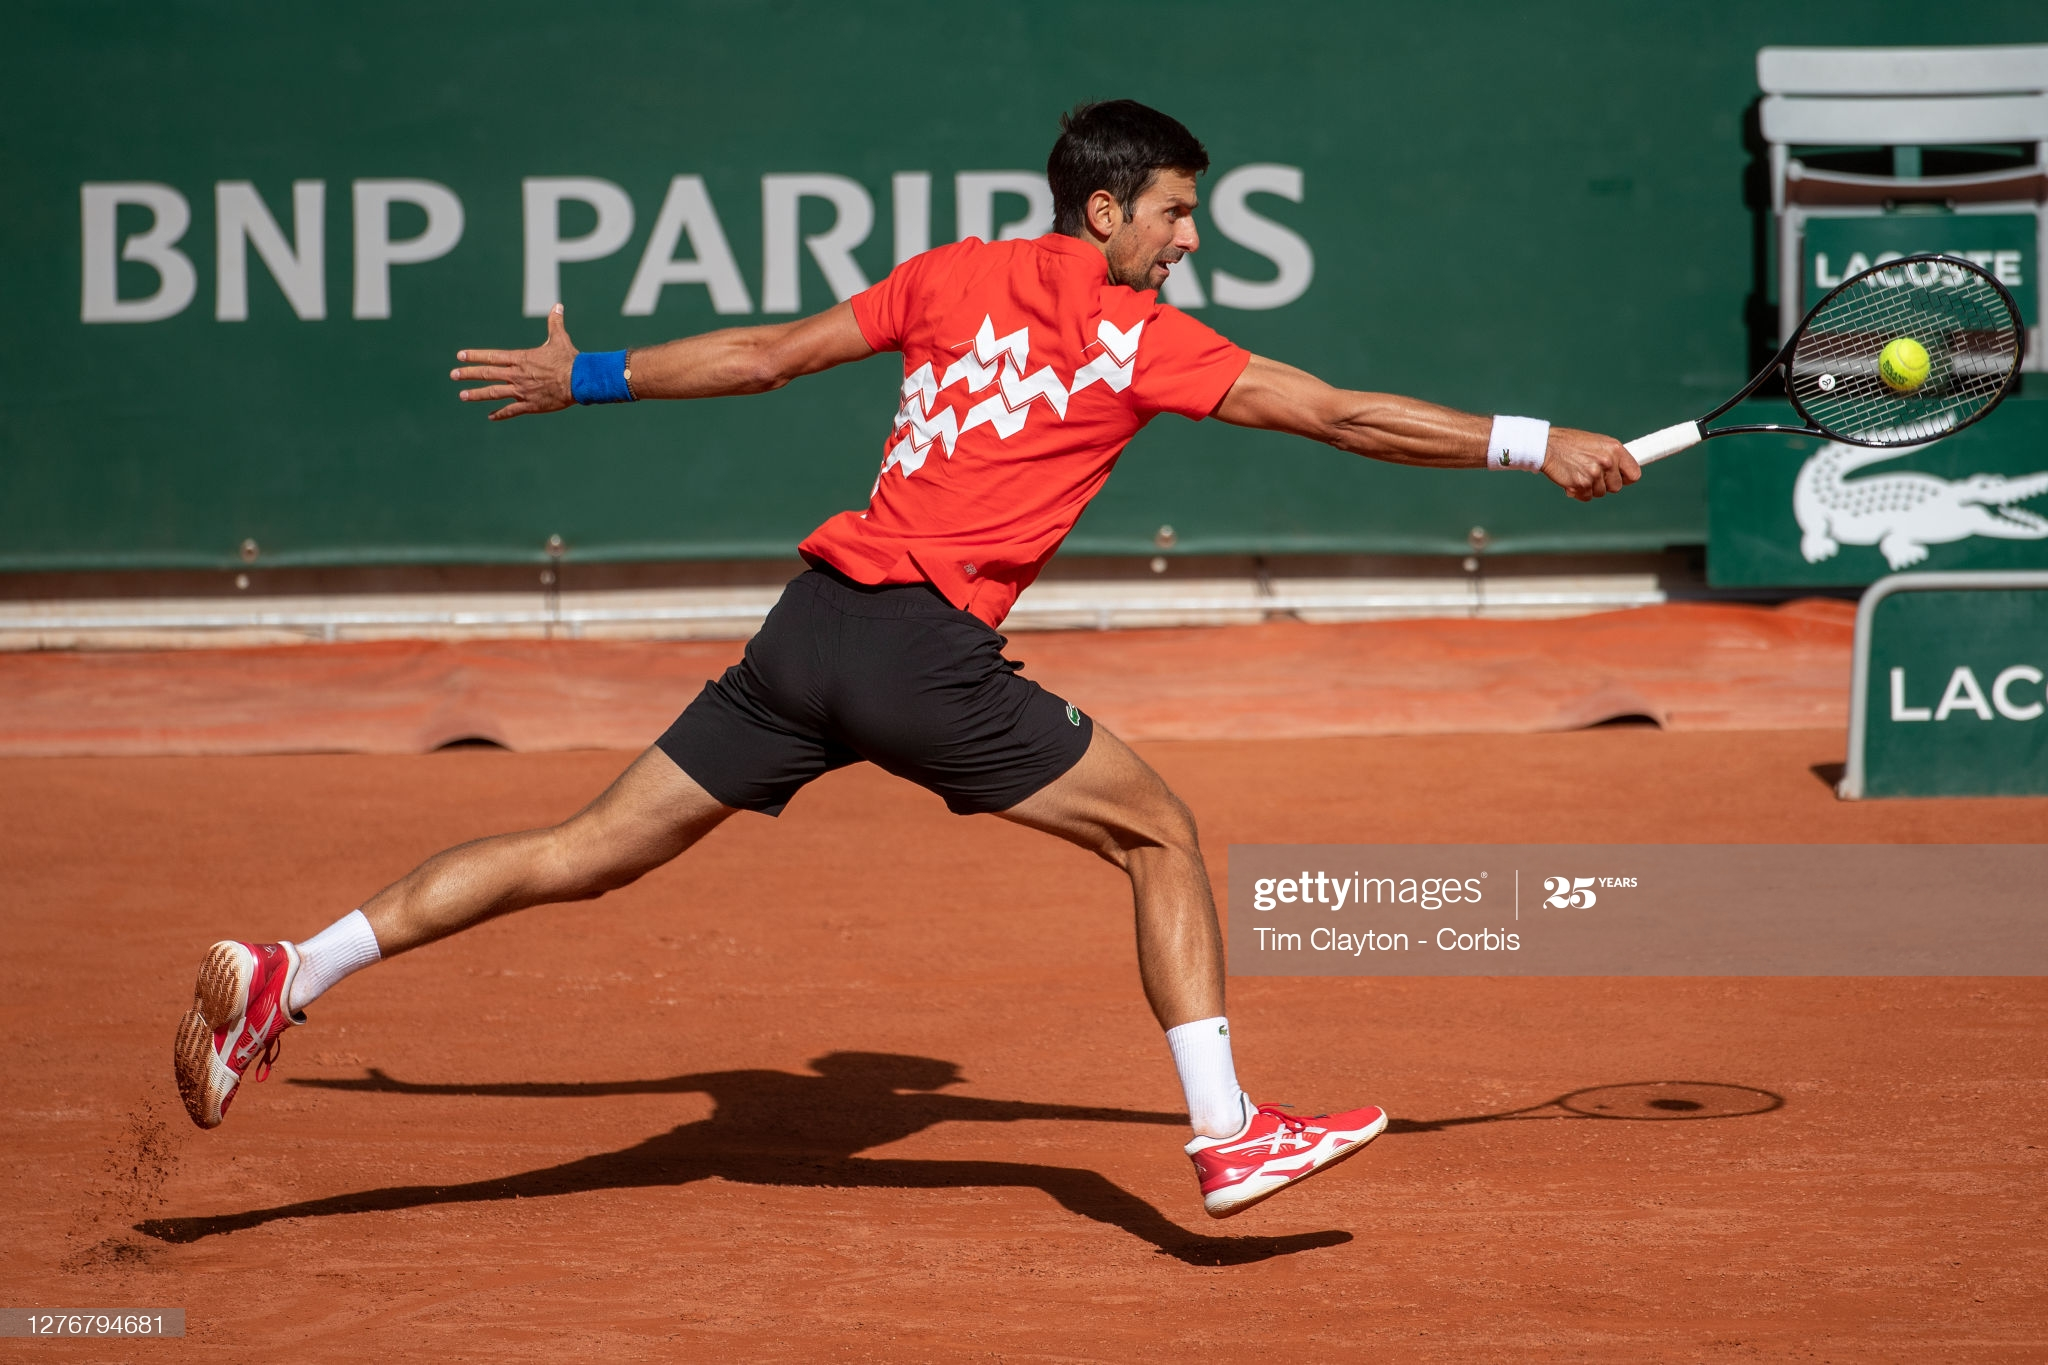 nole french2020.1